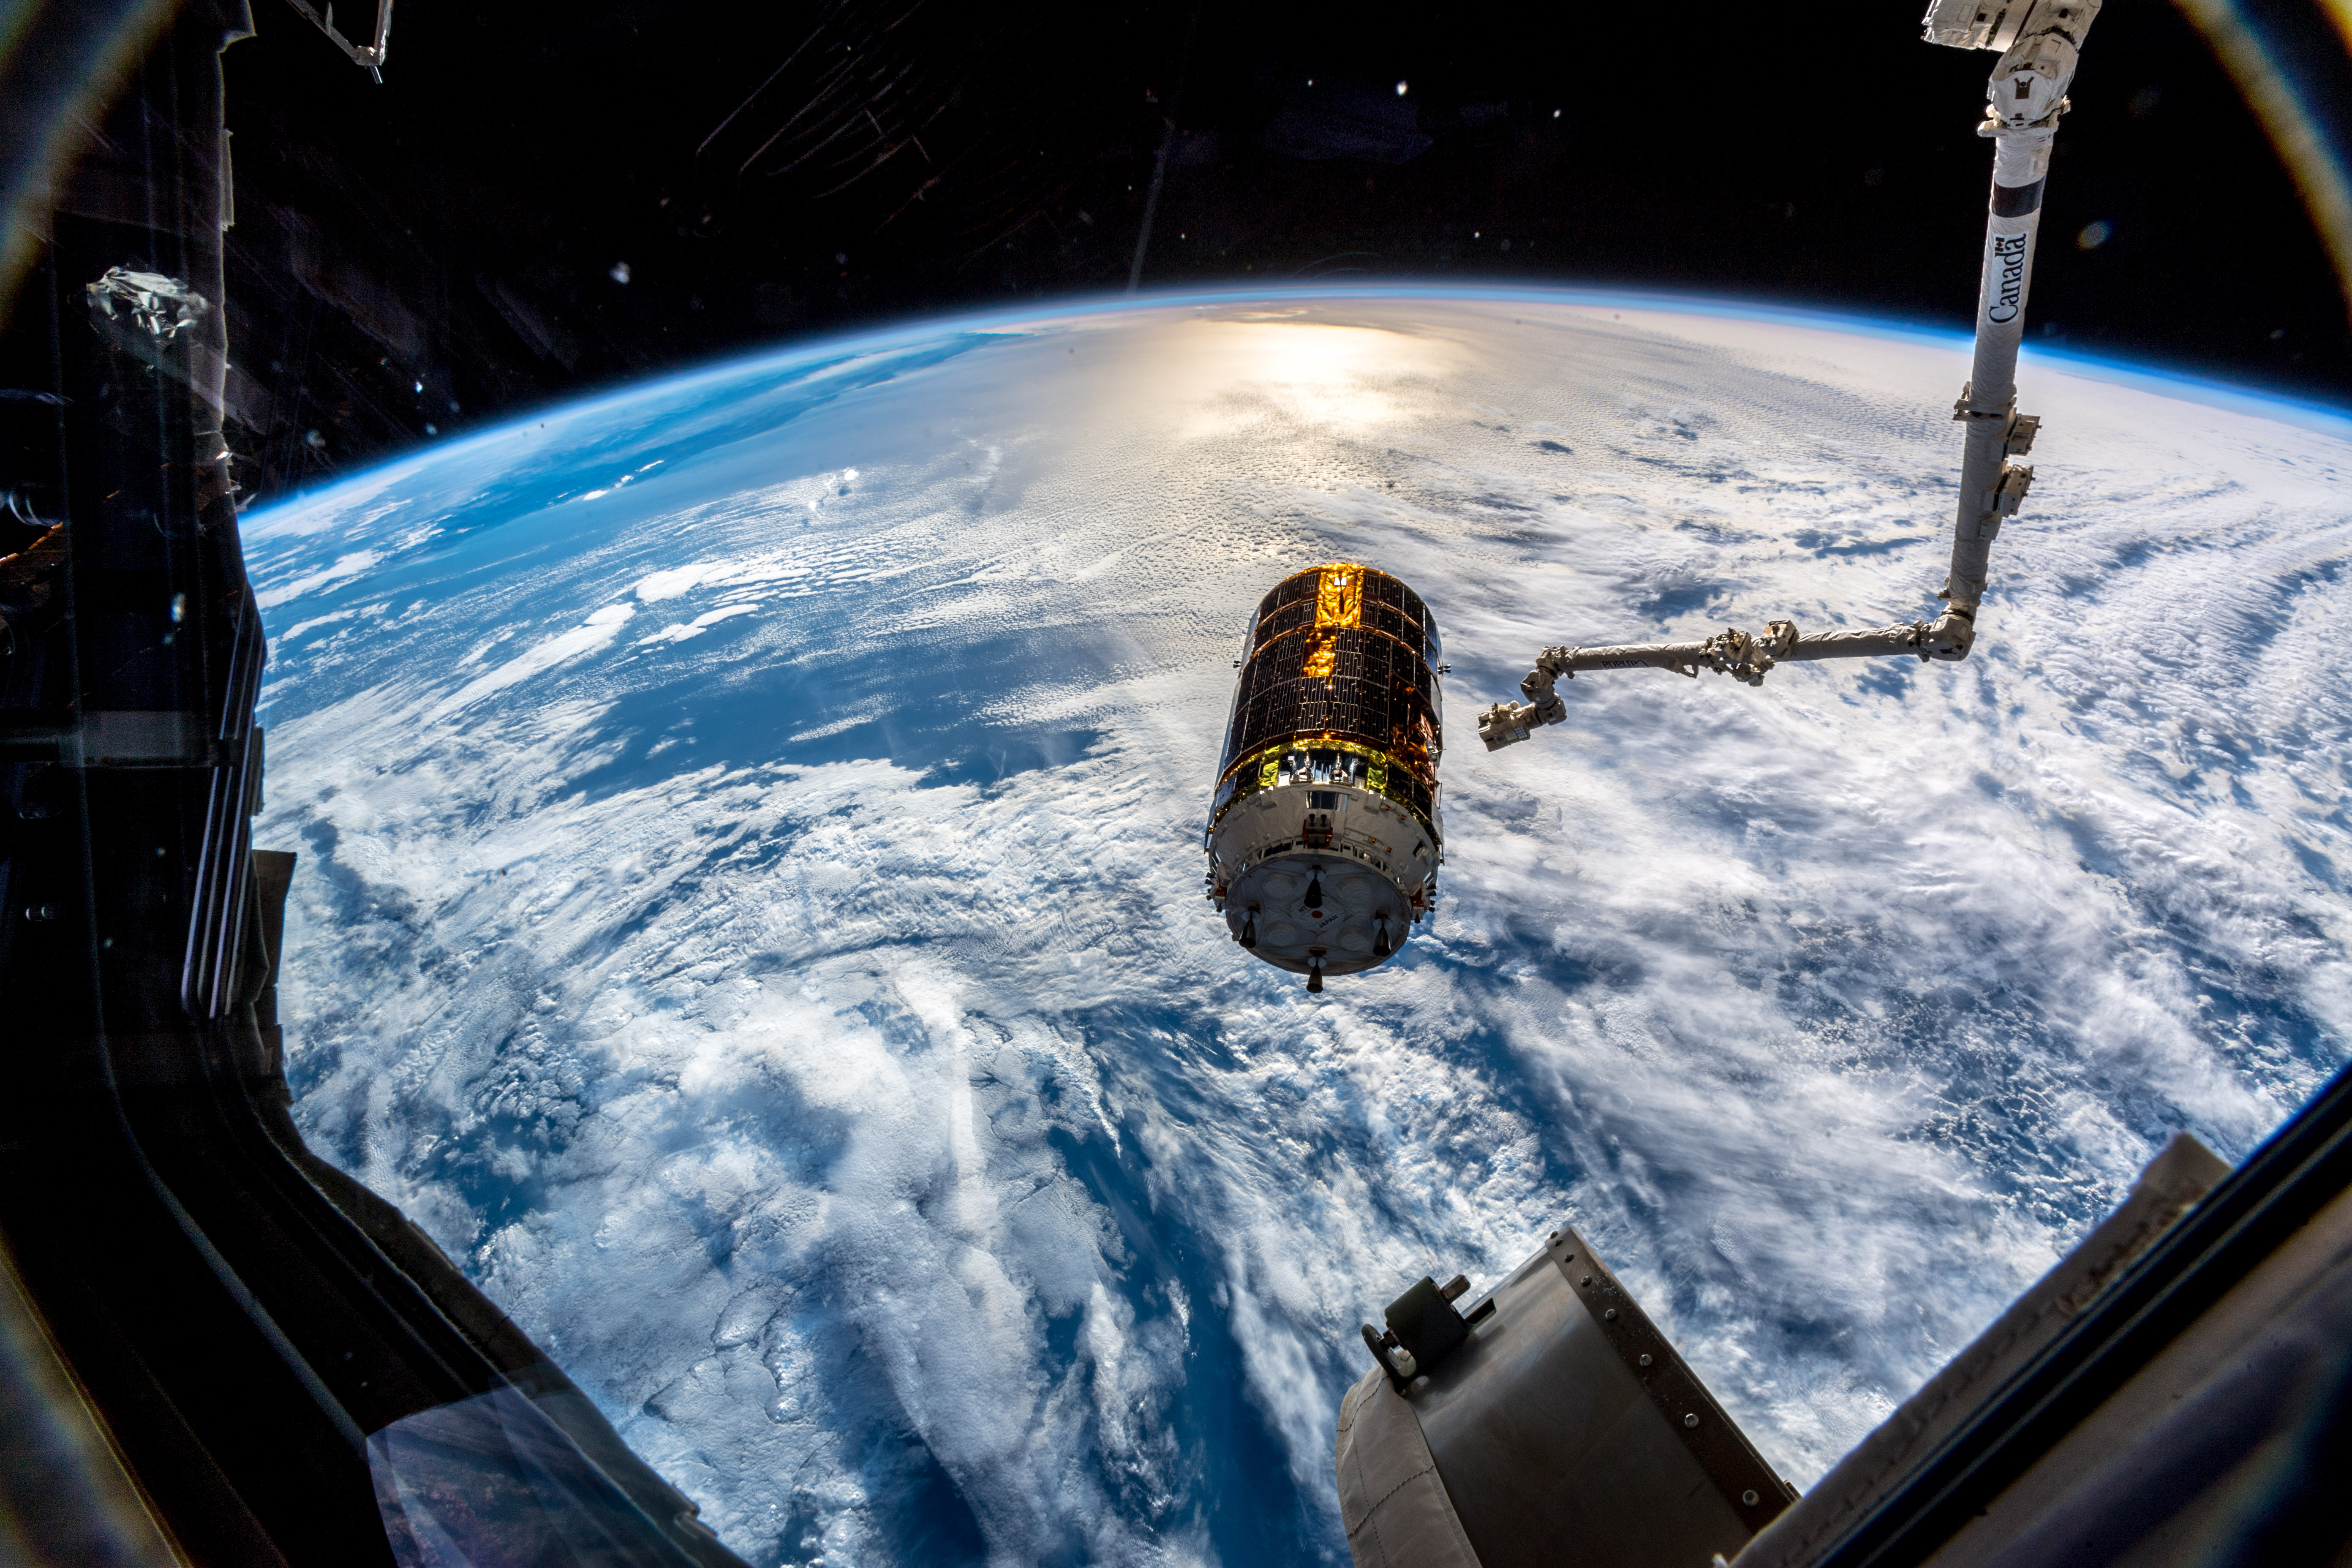 Week in space – all of the stars plus a spacecraft release